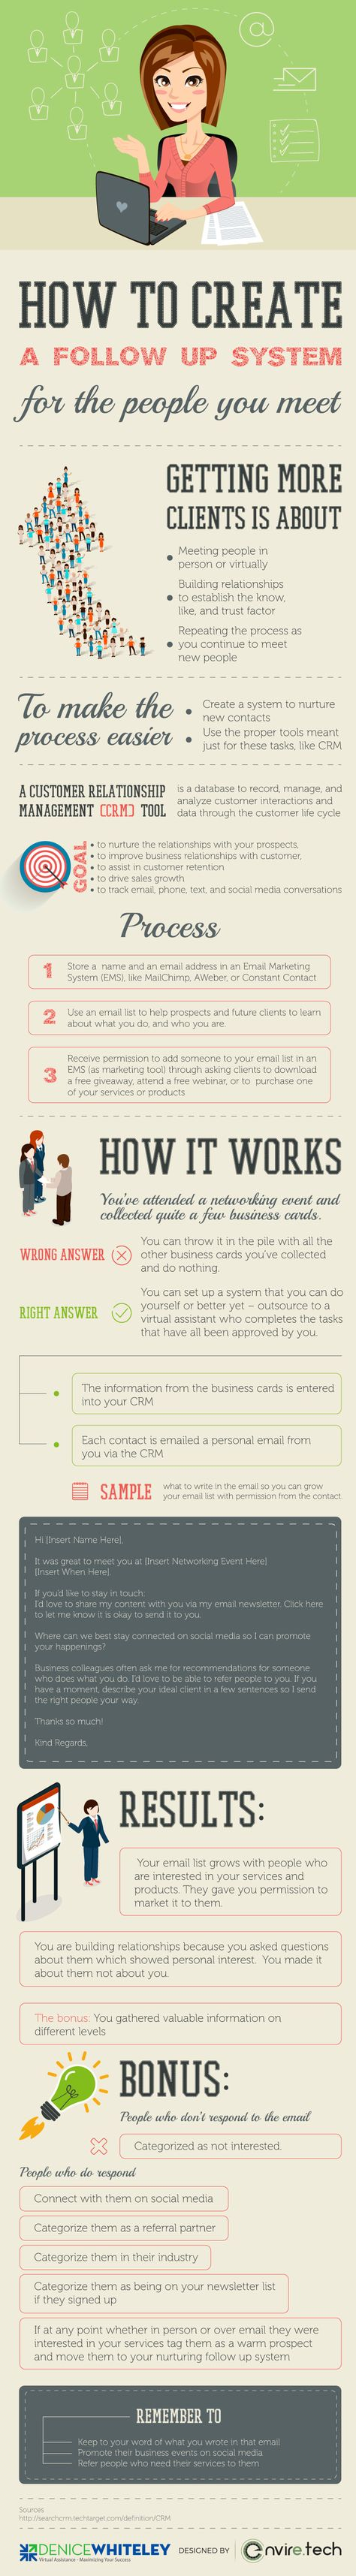 Tips on turning the people you meet into business clients #infographic